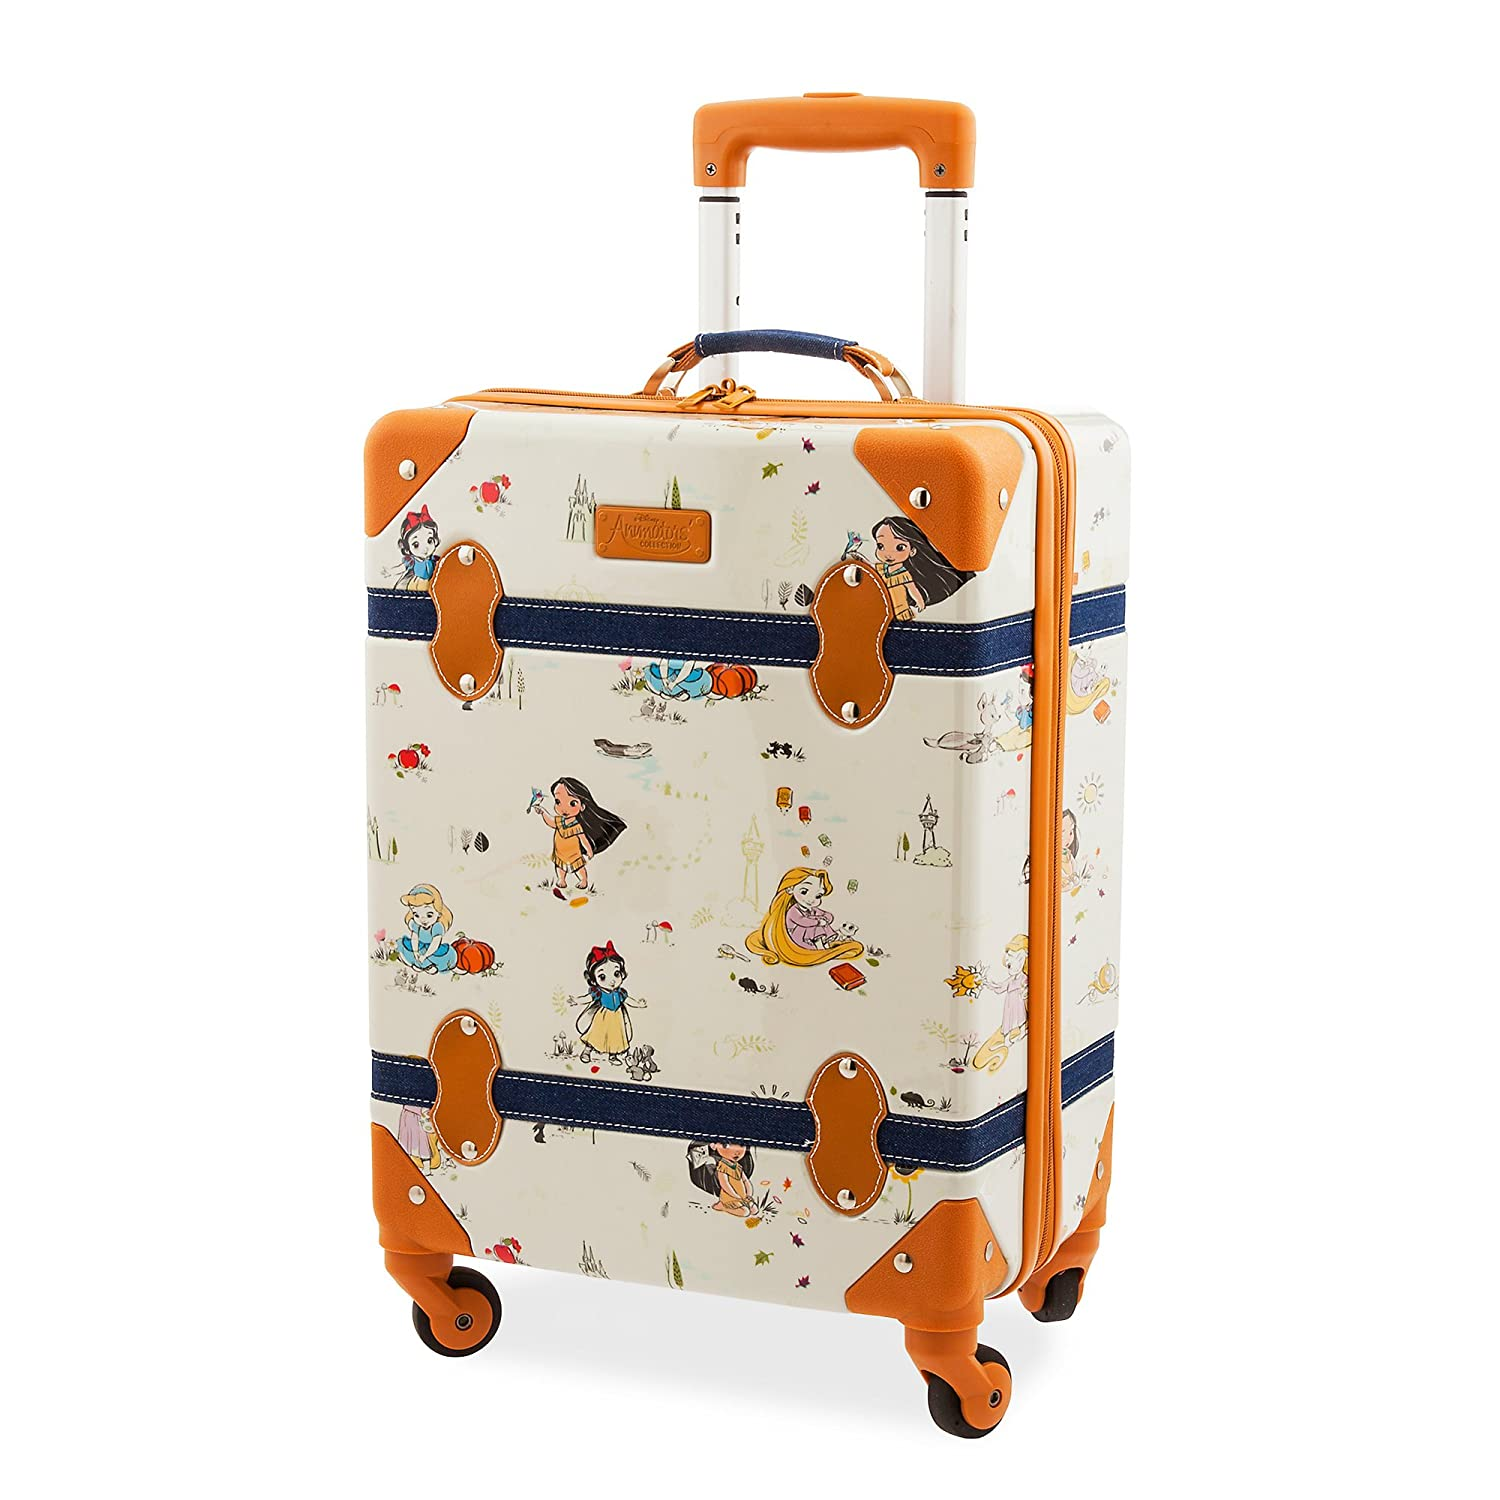 Disney Animators' Collection Rolling Luggage 427247954741